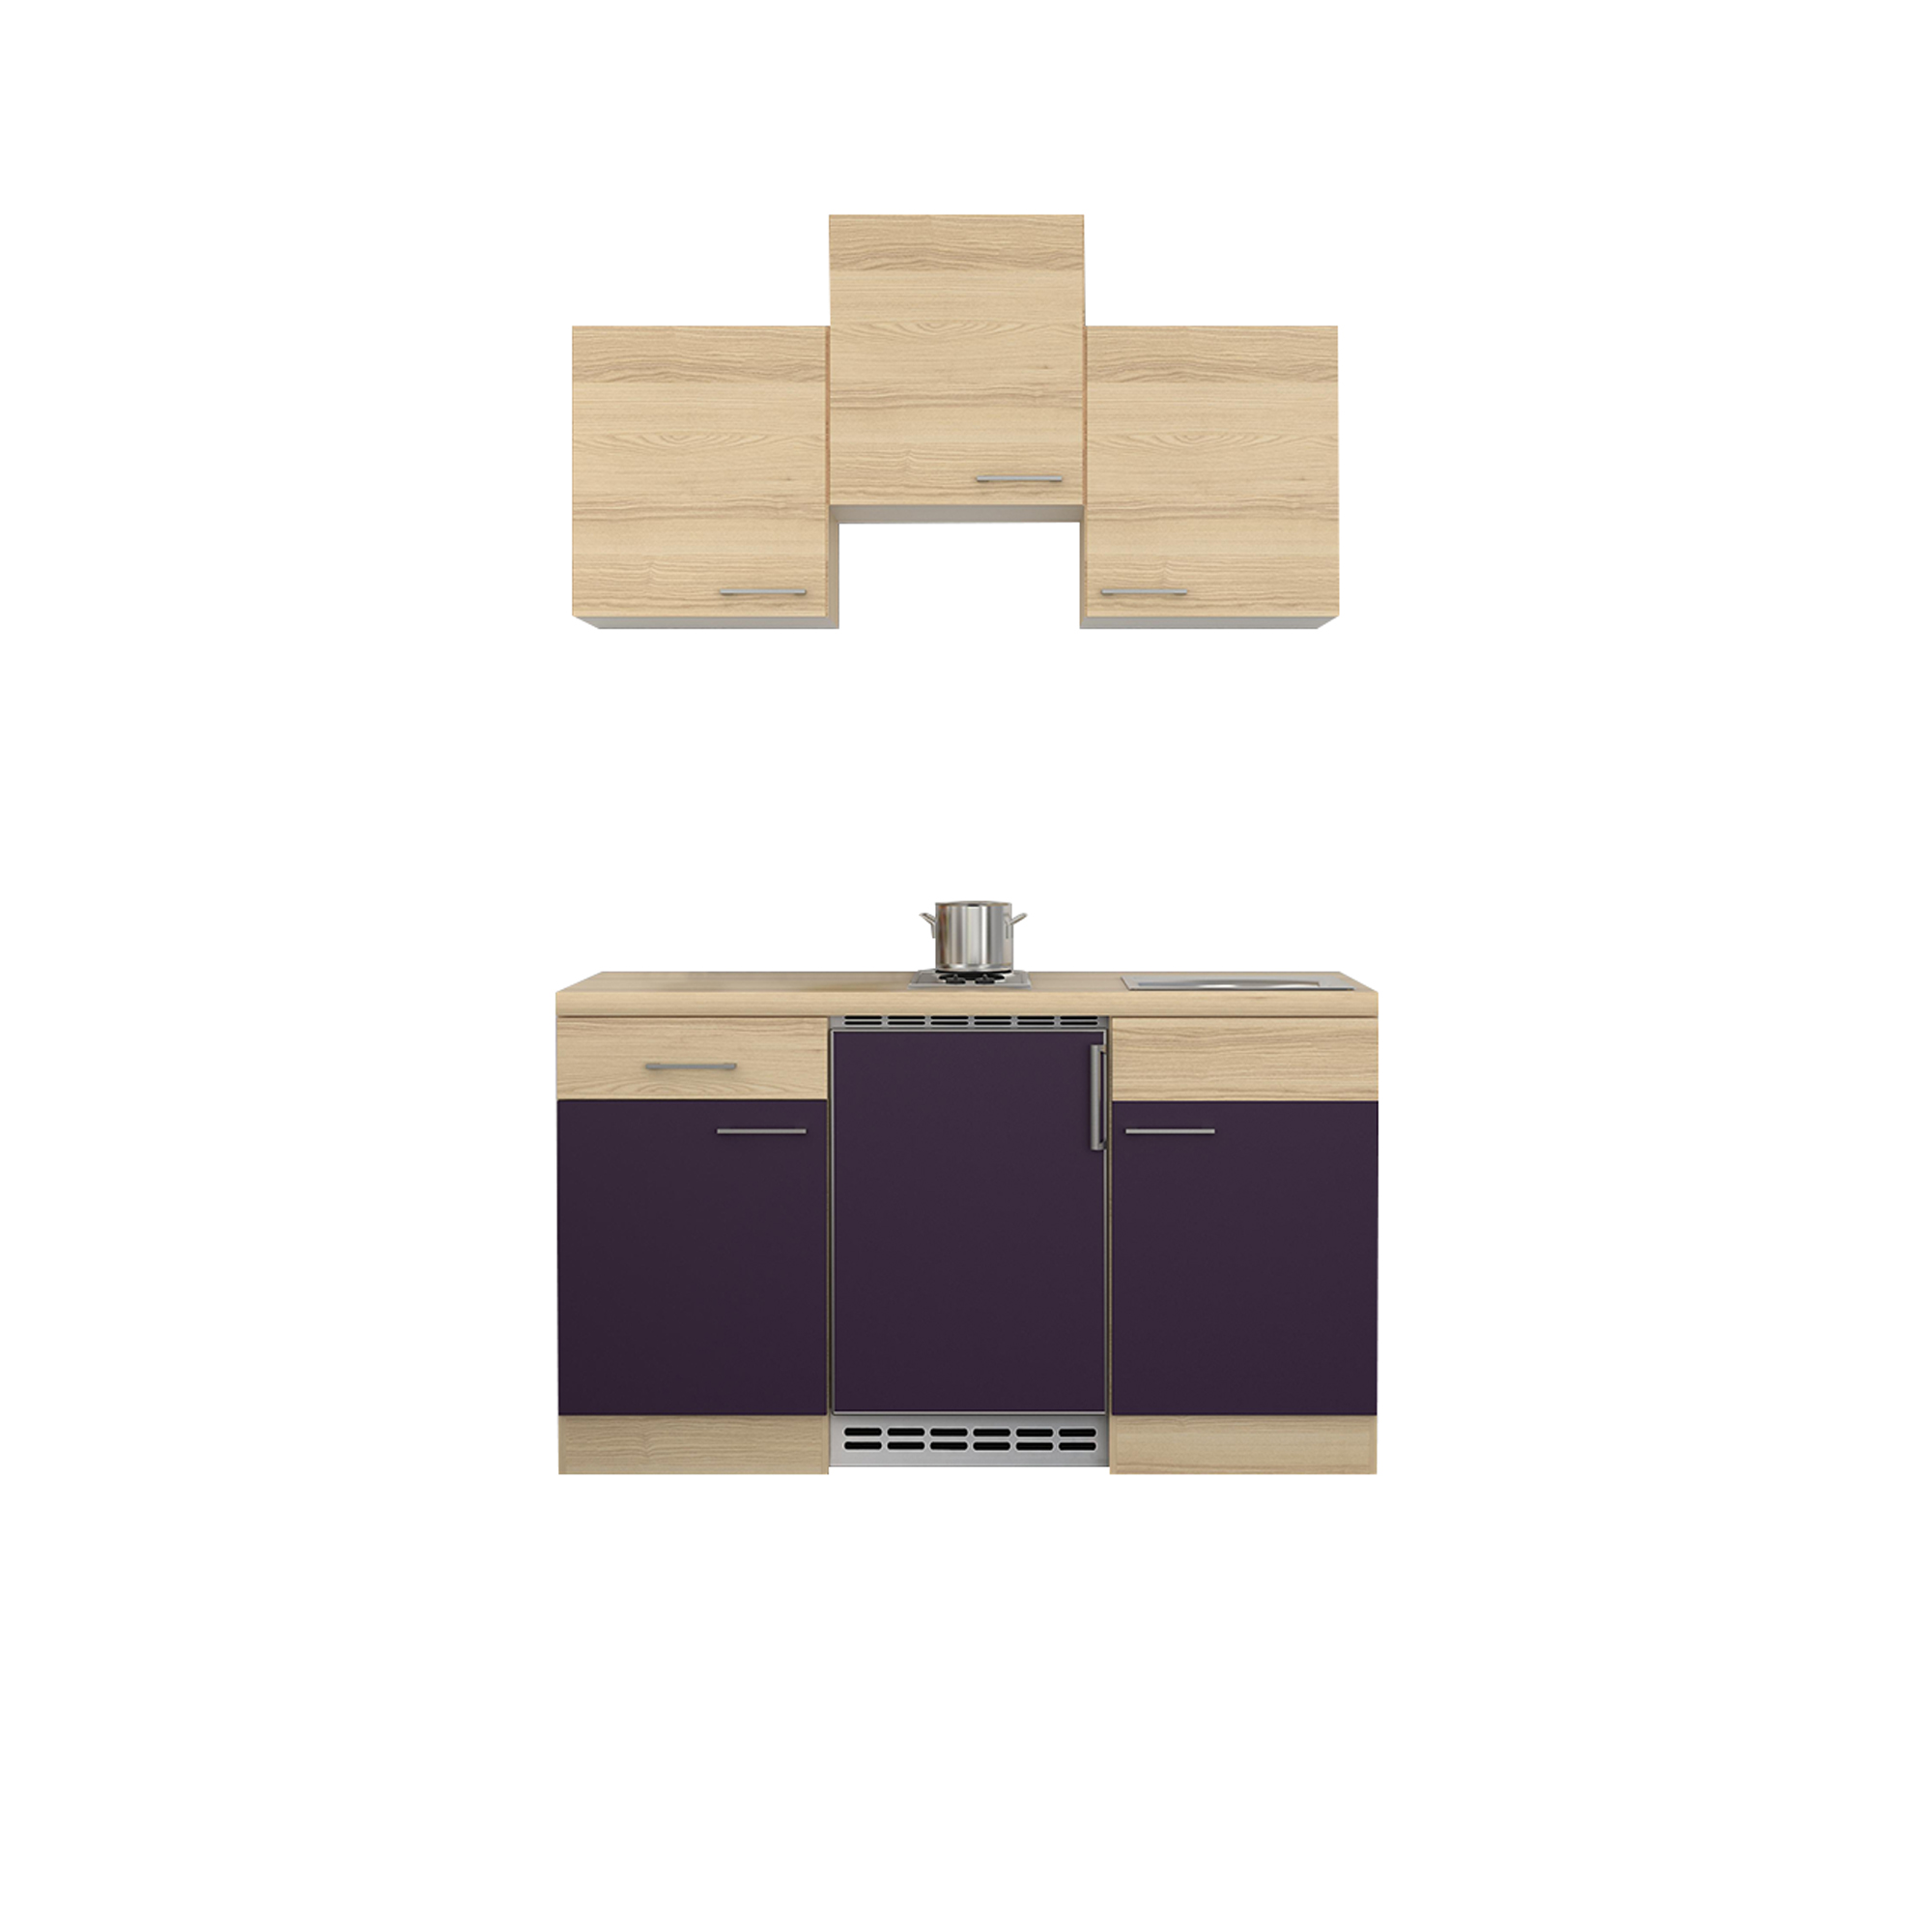 singlek che focus mit elektrokochfeld k hlschrank breite 150 cm aubergine k che singlek chen. Black Bedroom Furniture Sets. Home Design Ideas